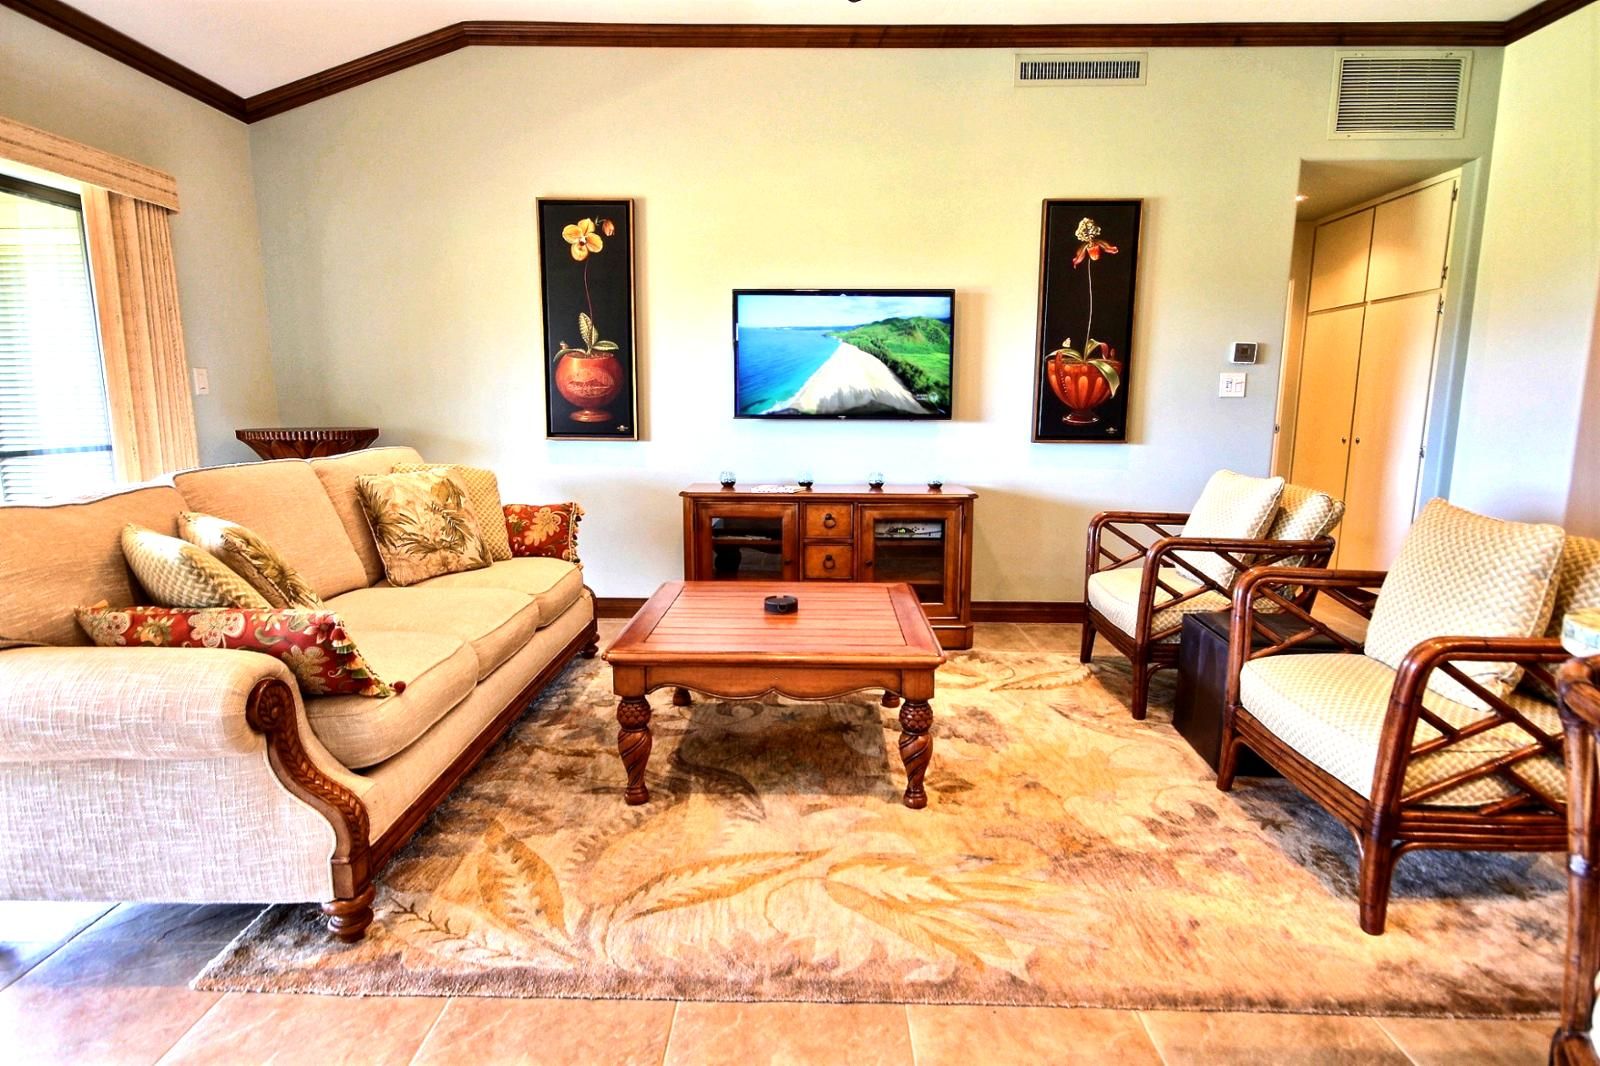 Flat screen TV to watch your favorite sporting team win while relaxing on Maui.